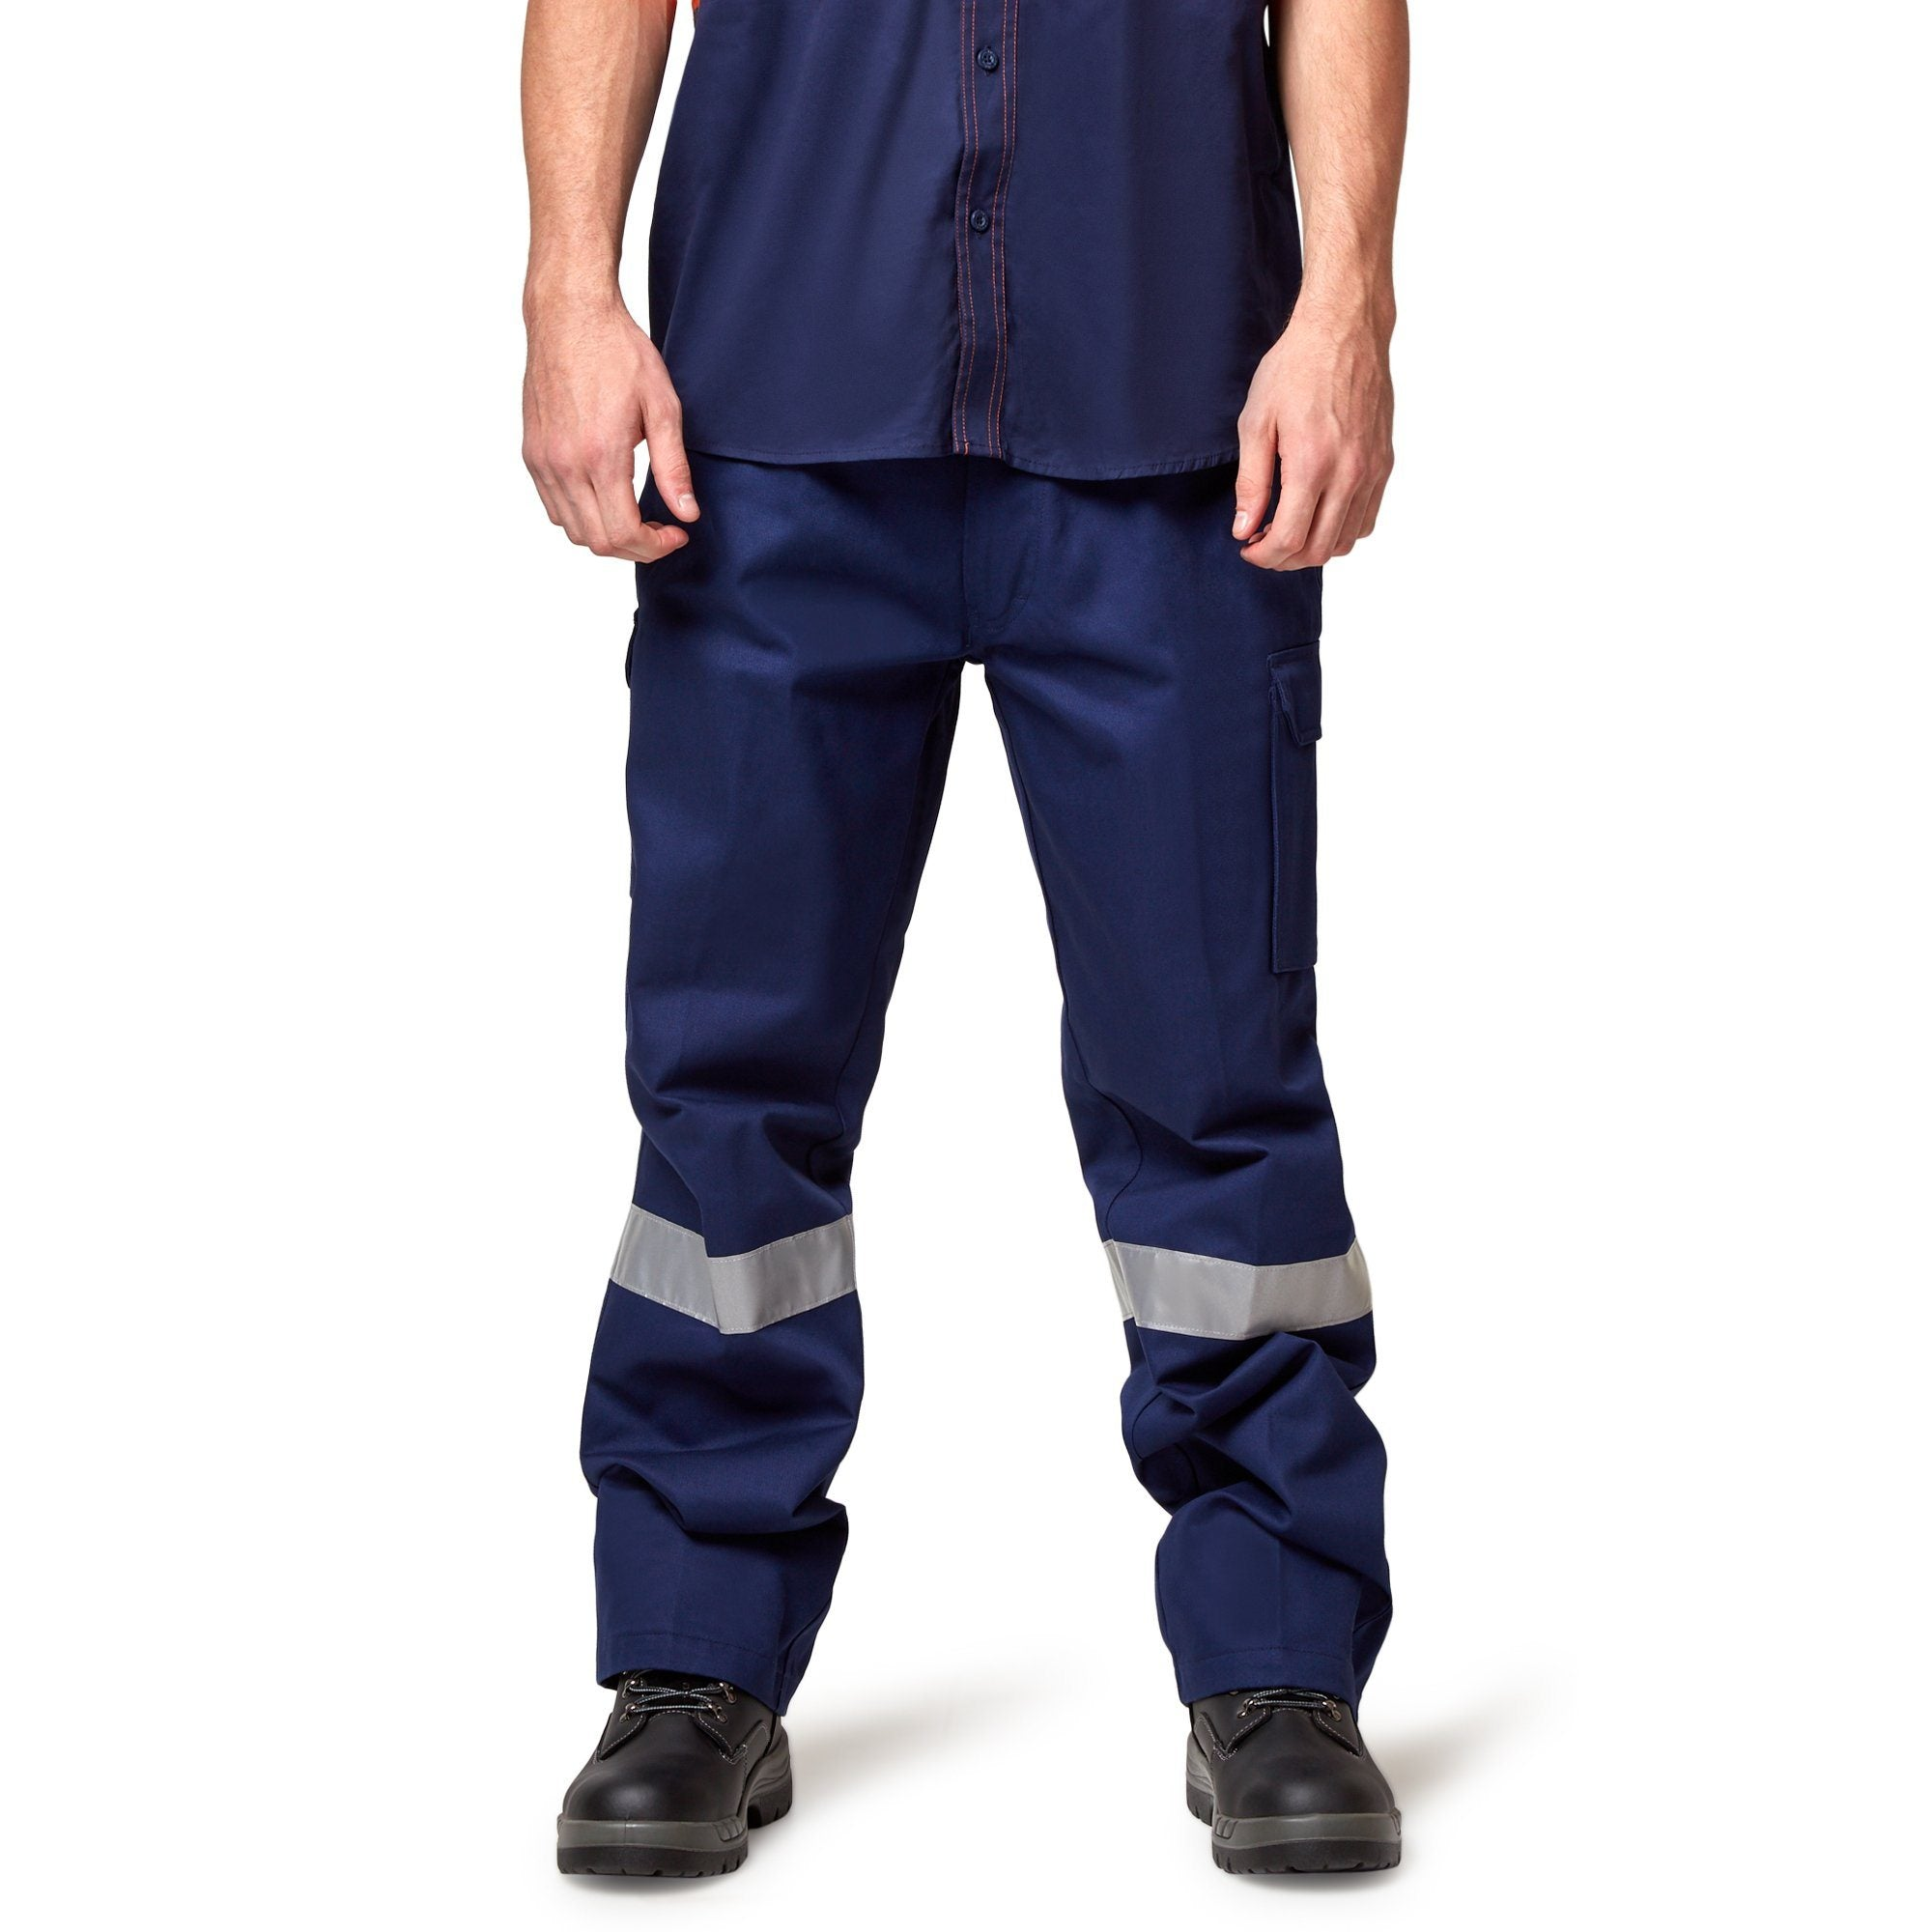 Hard Yakka Generation Y Cargo Pant with Reflective Tape, Size 107R) - Workwear Hard Yakka